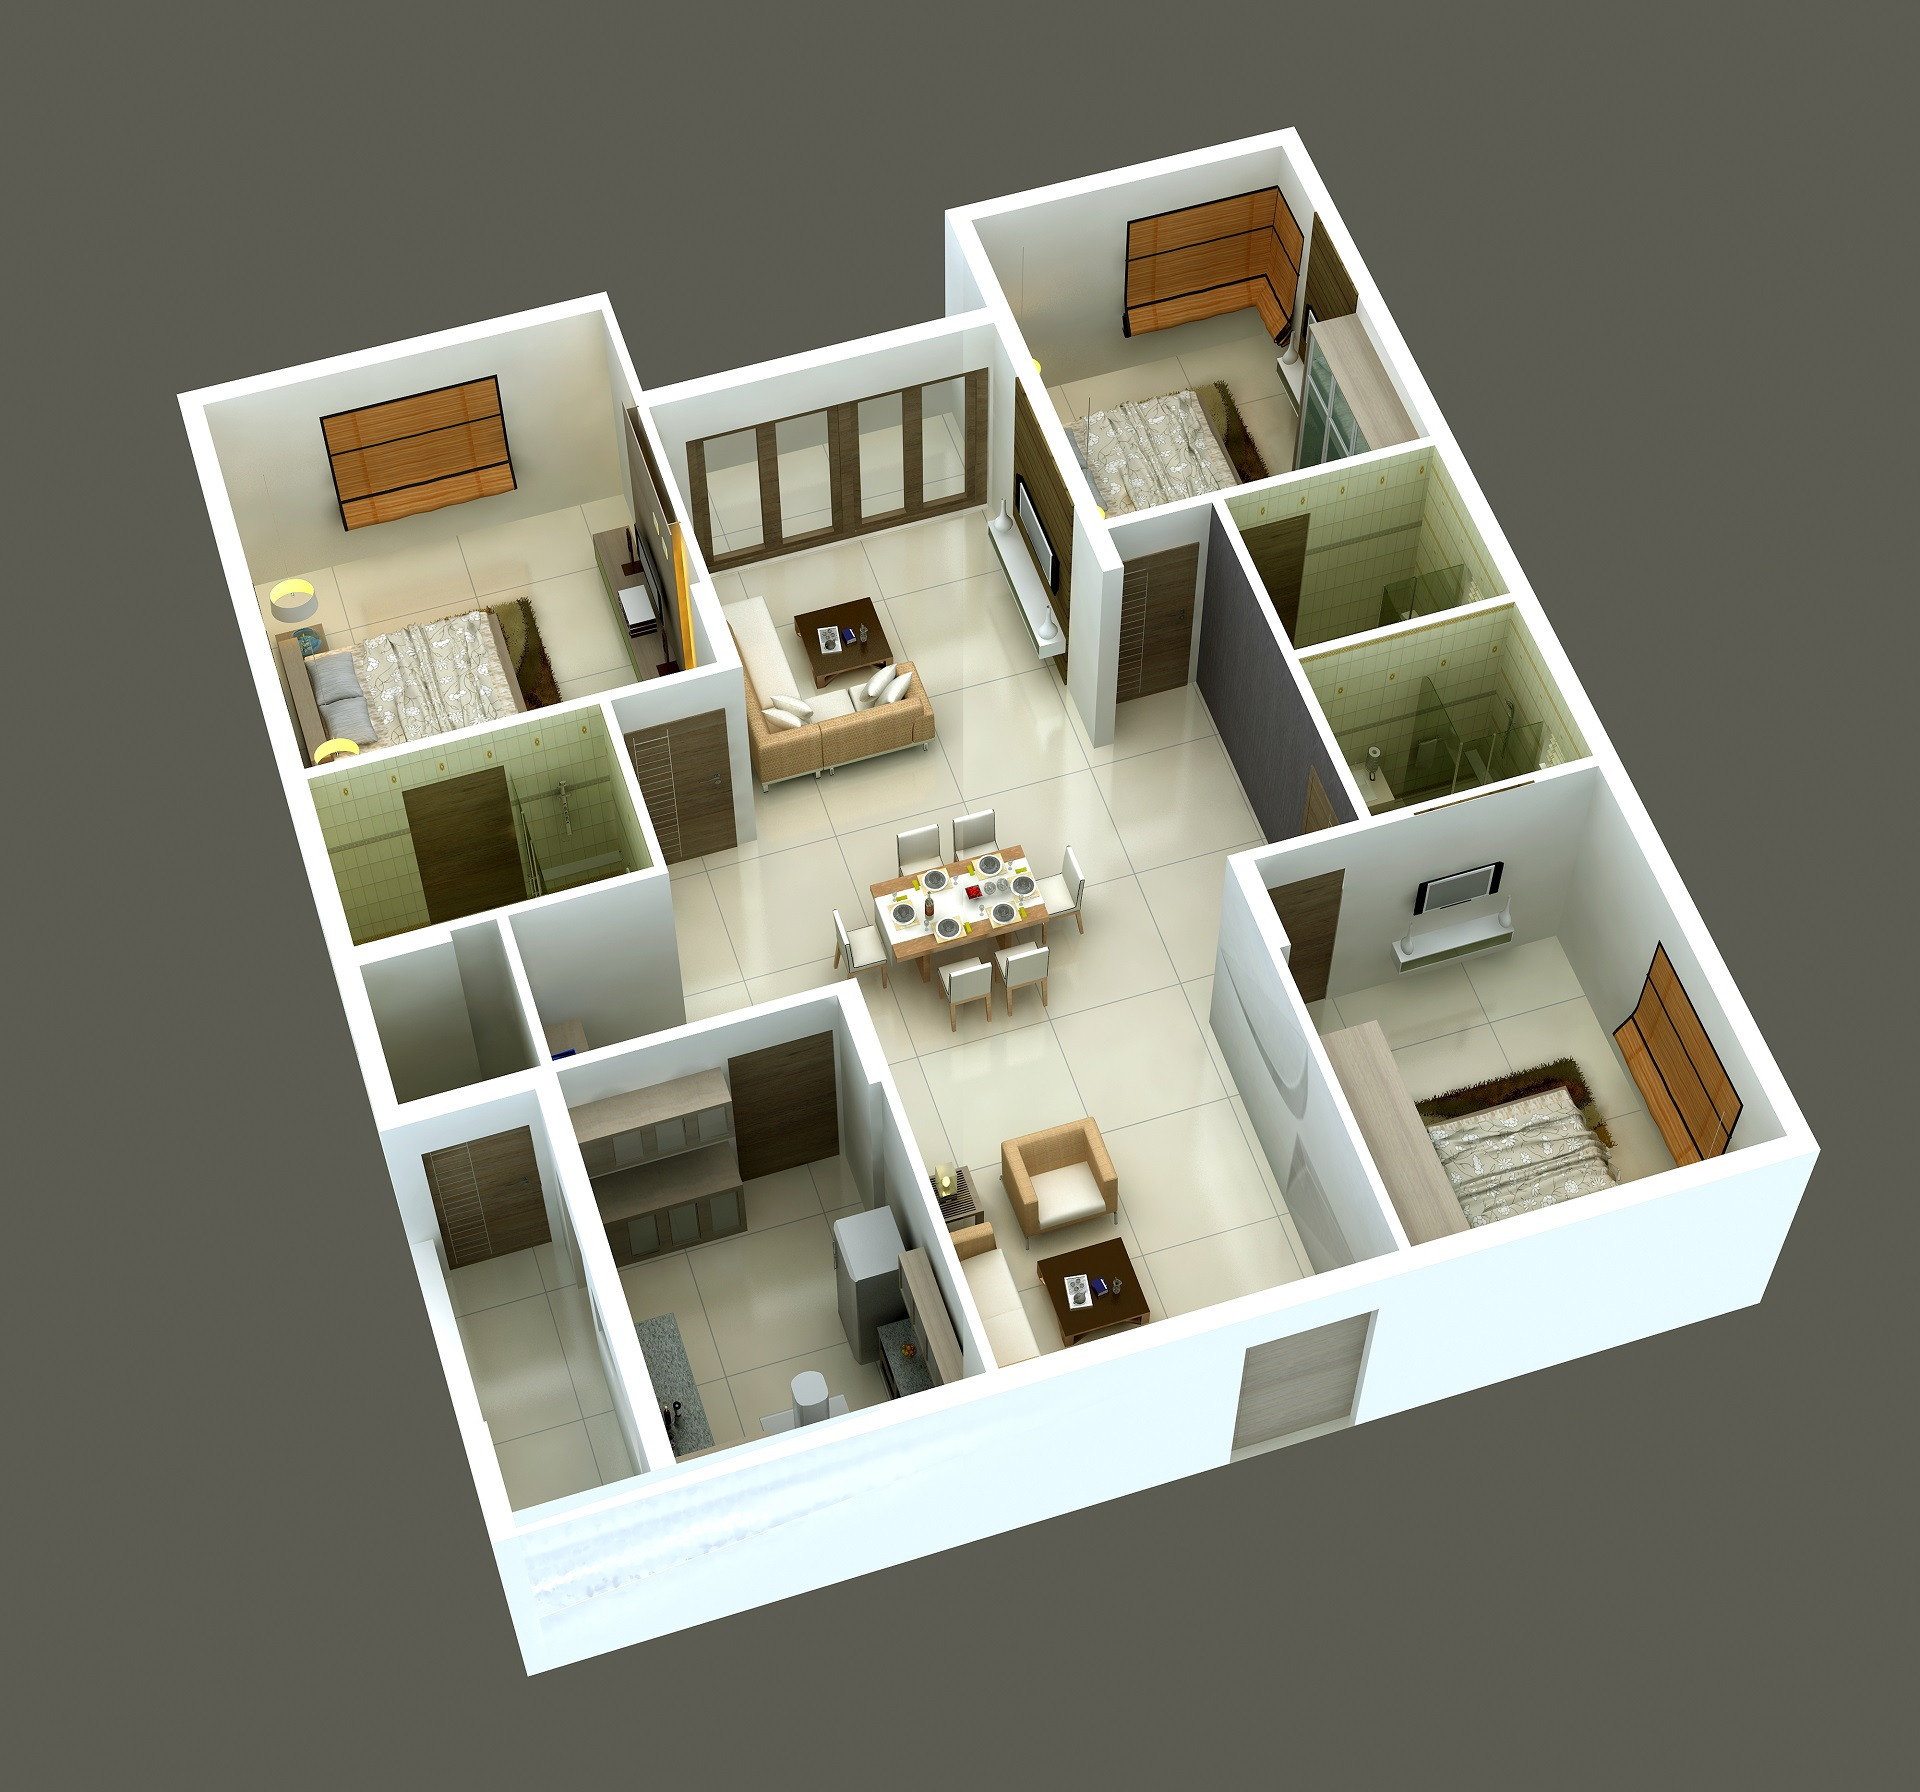 ar-concepts-emami-apartment-residential-floor-plan-b